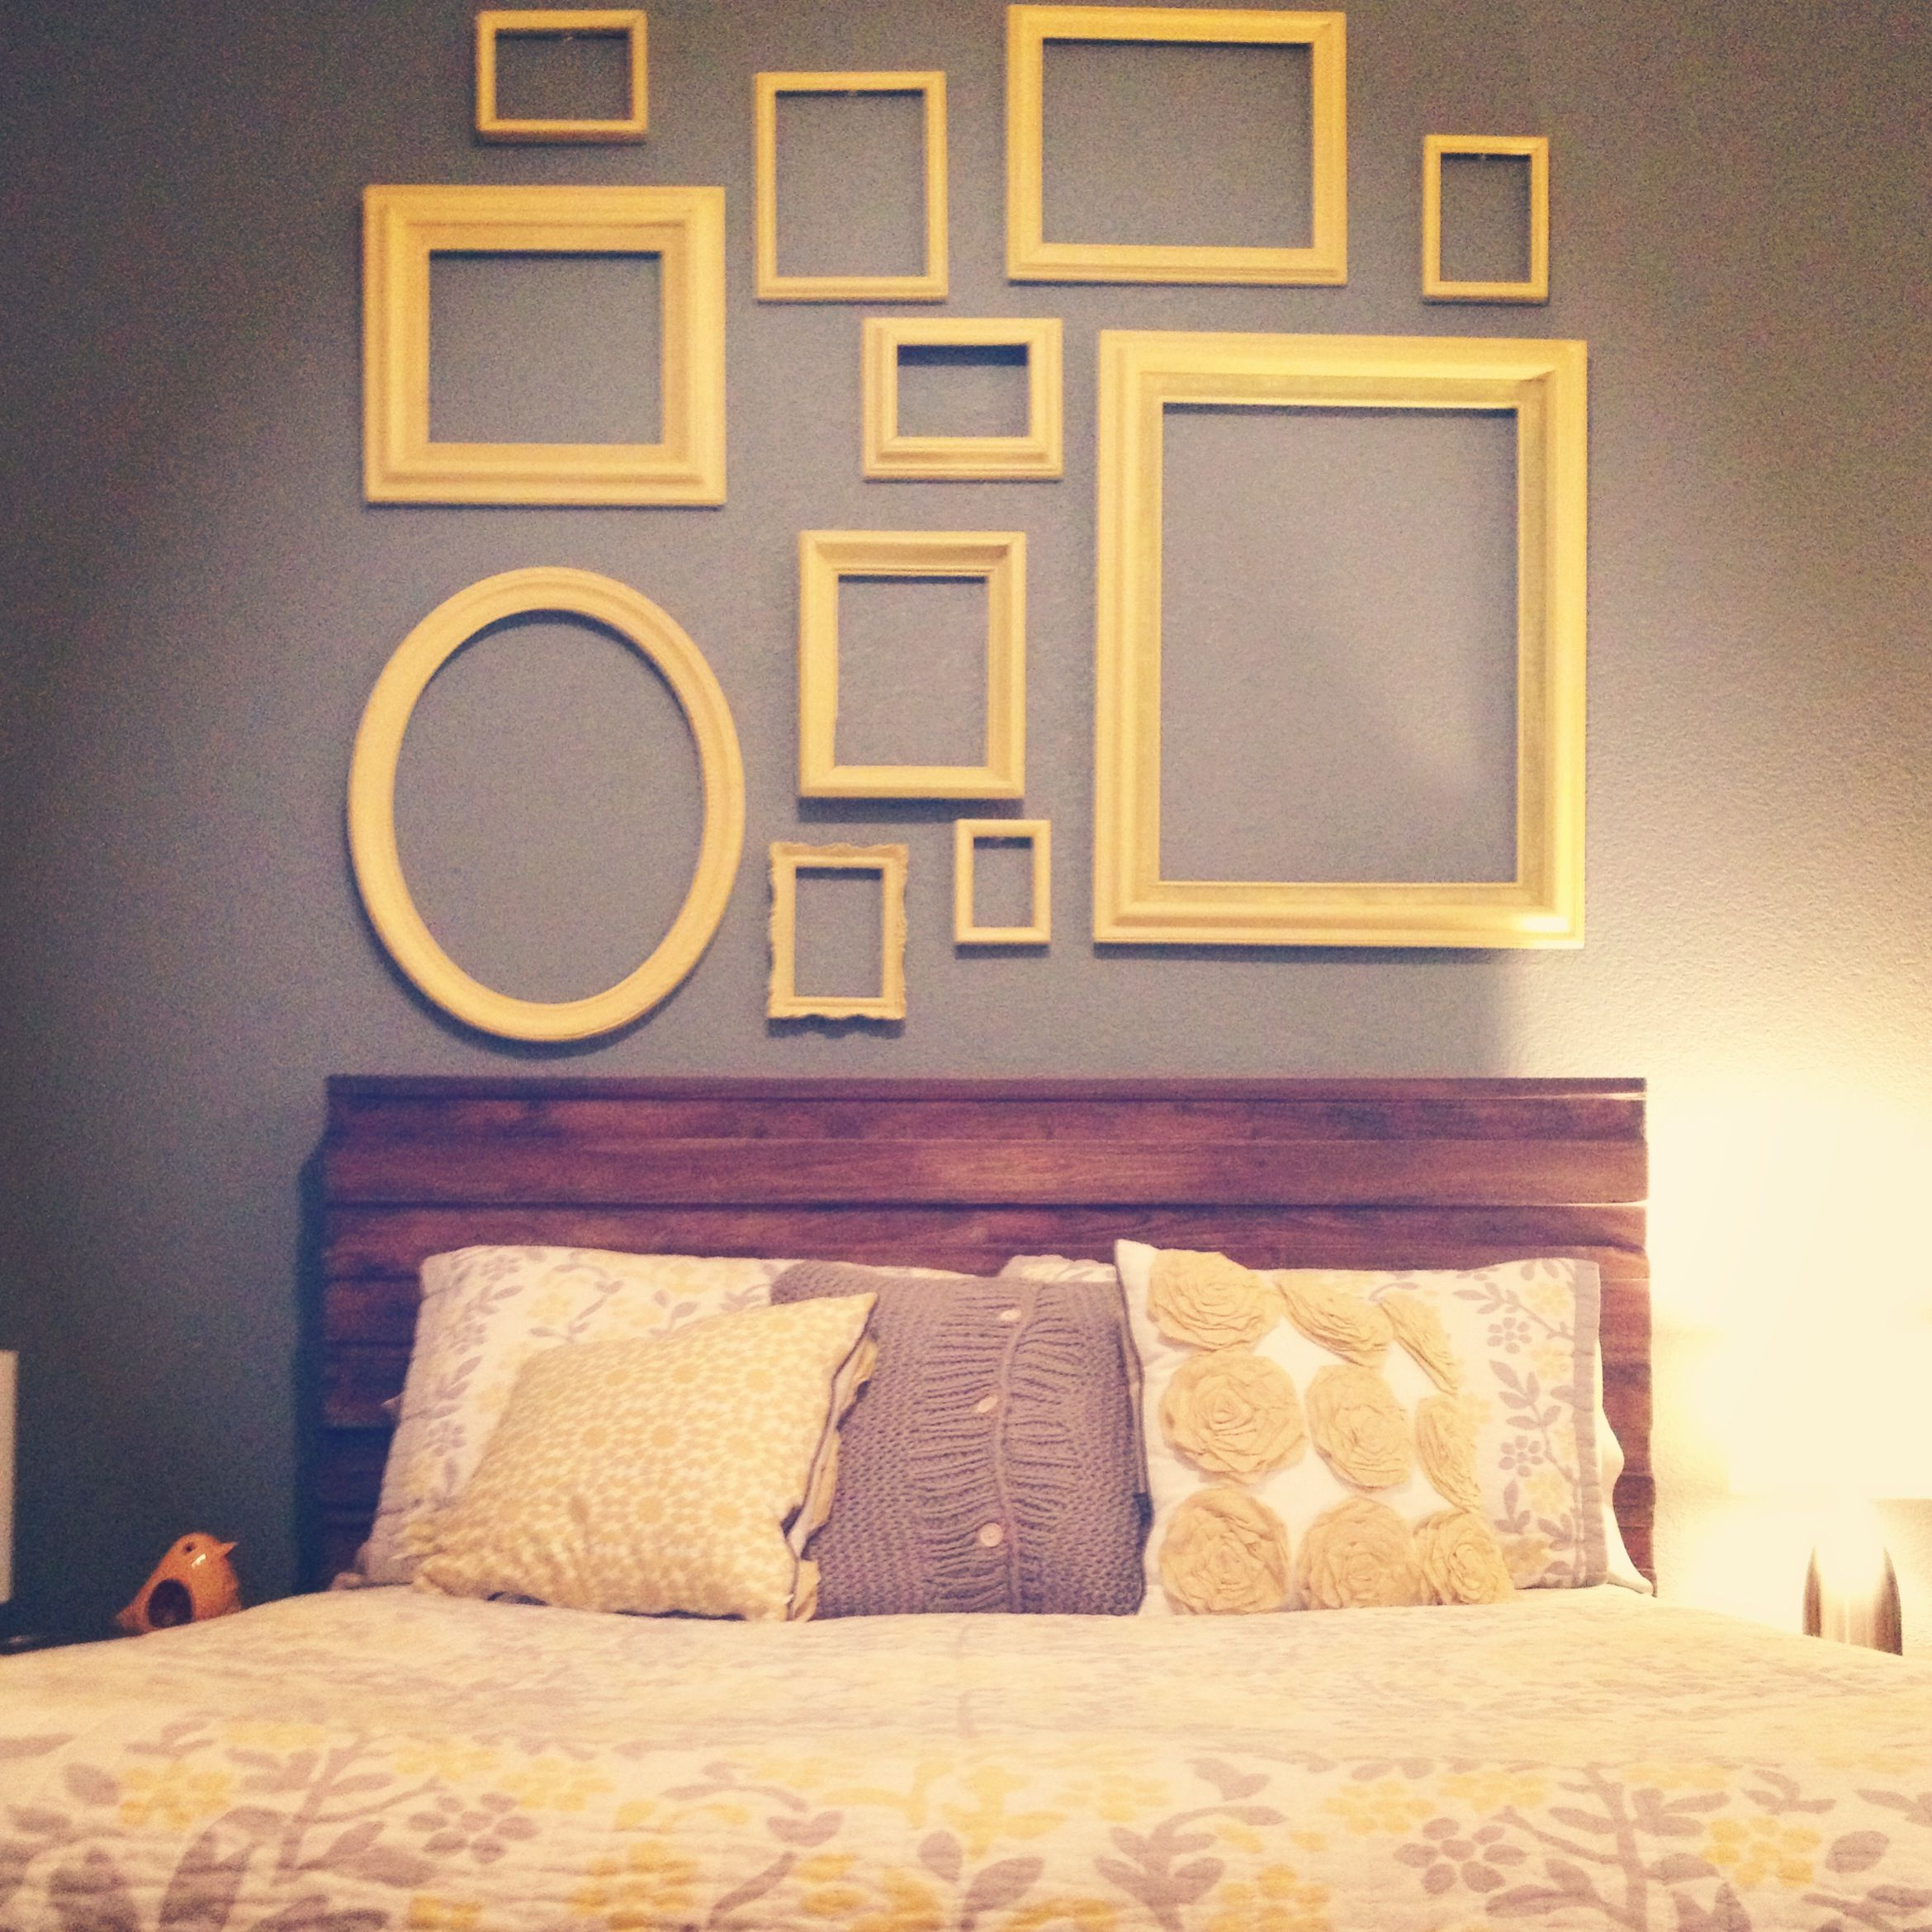 Wall of frames | Frames | Pinterest | Walls, Bedrooms and Lofts